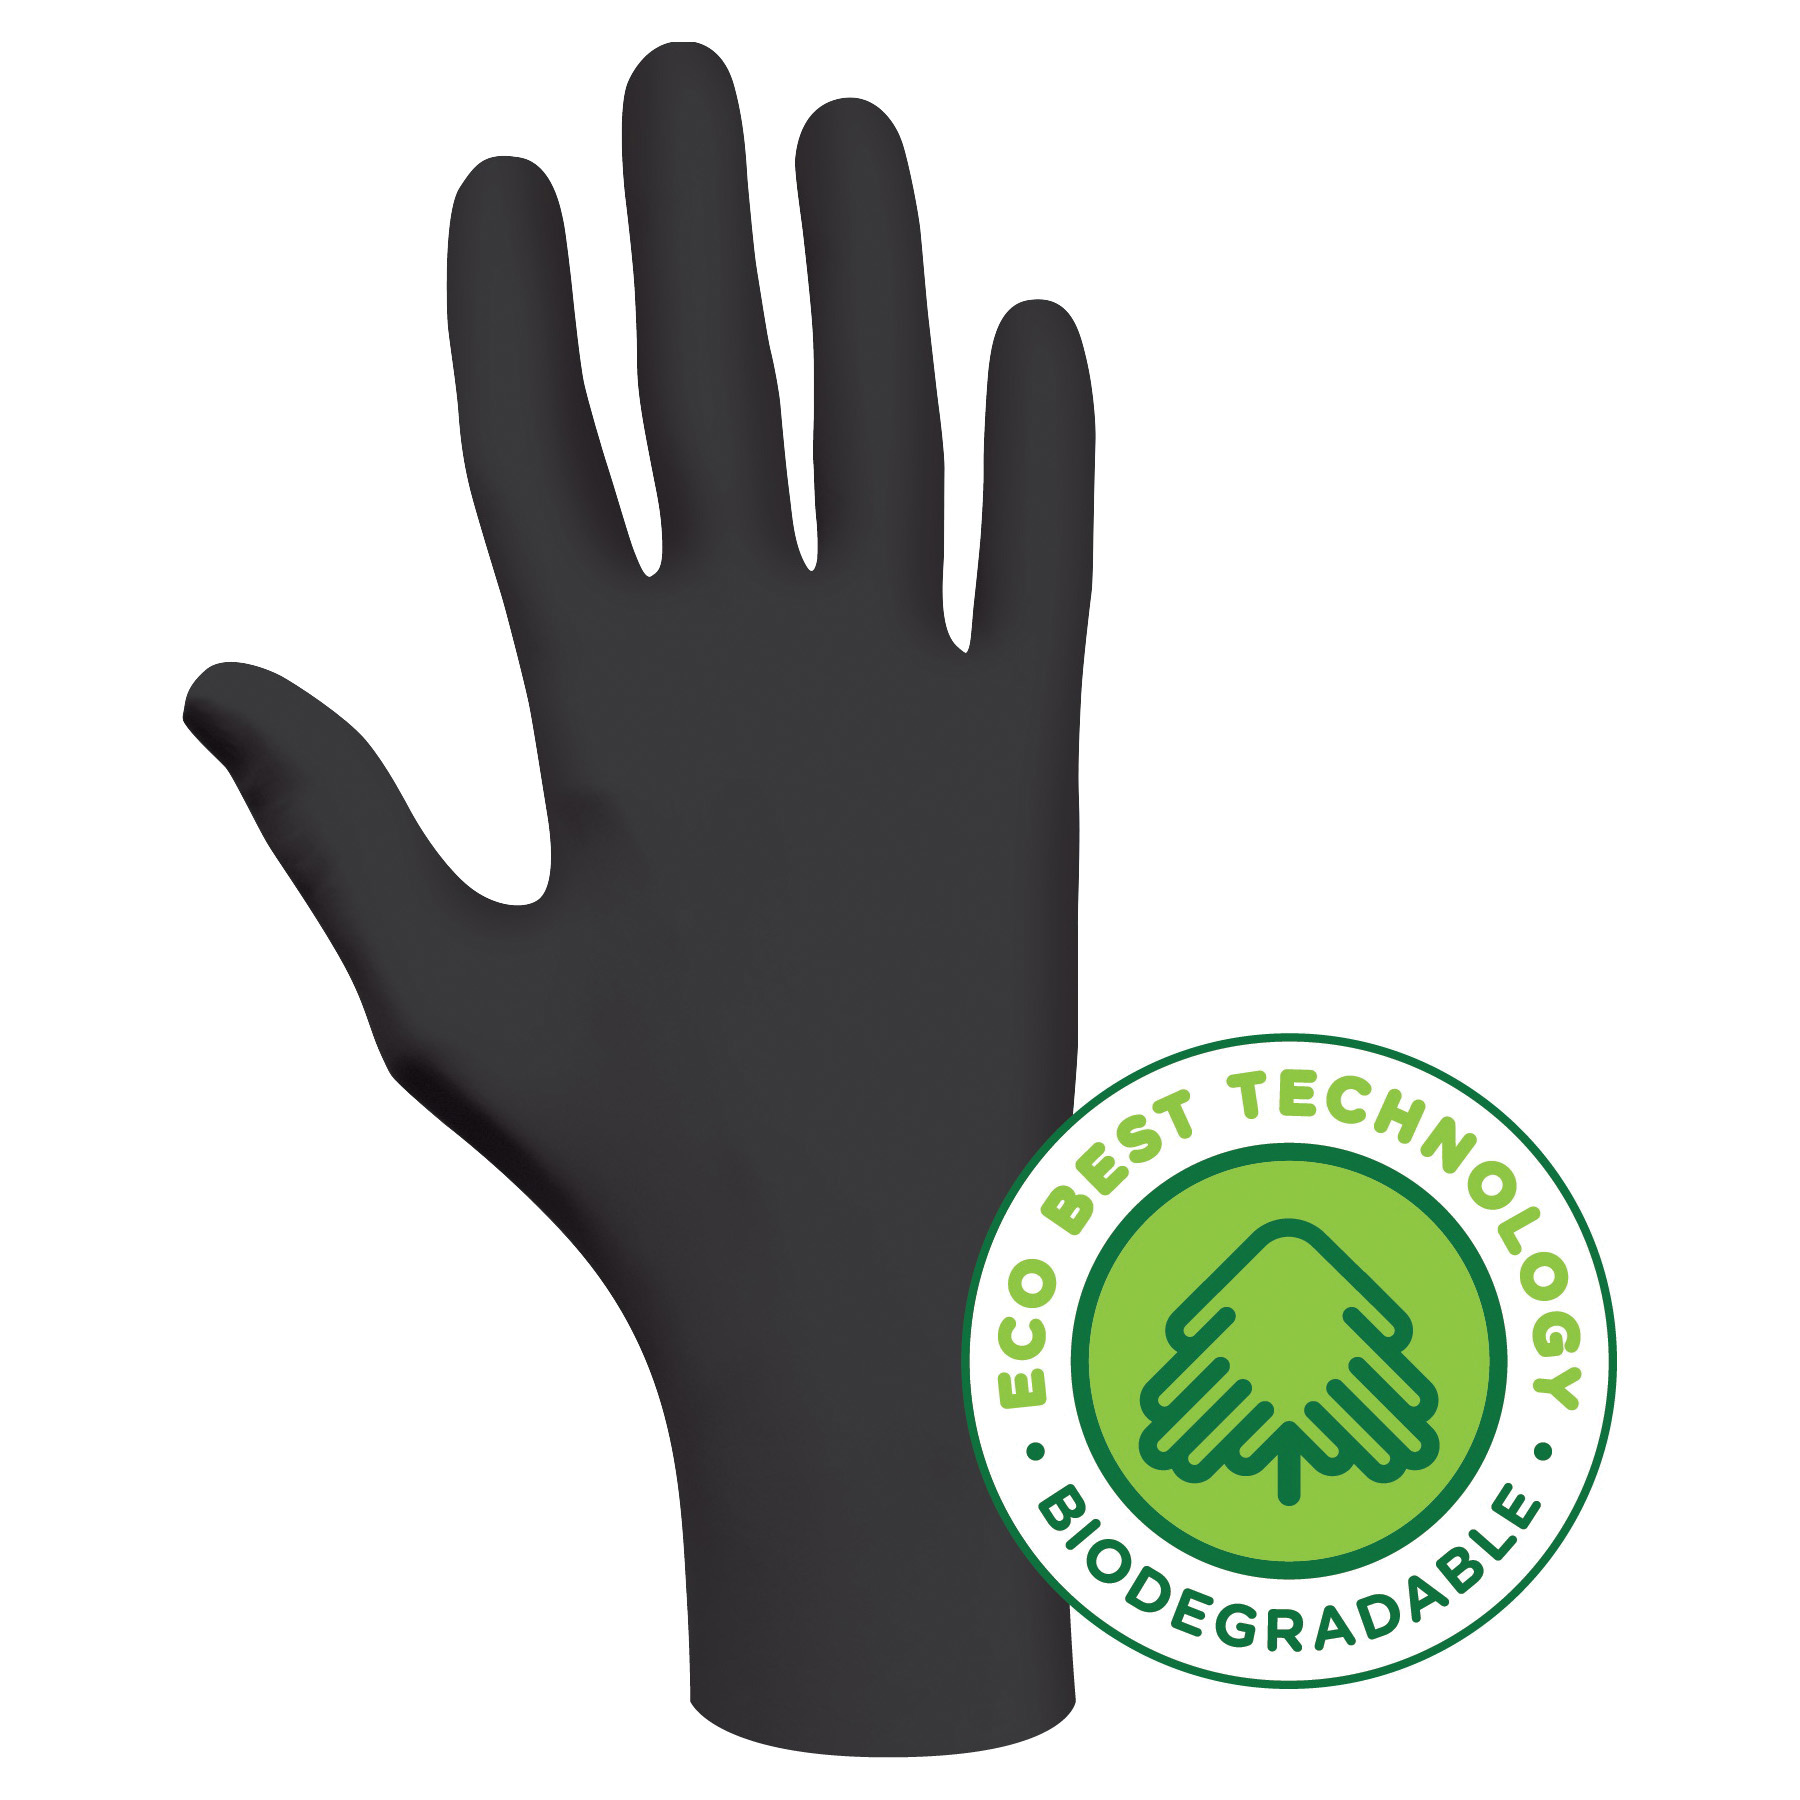 Showa Best® 6112PFL Bio-Degradable Disposable Gloves, L/SZ 9, Nitrile, Black, 9-1/2 in L, Non-Powdered, 4 mil THK, Ambidextrous Hand